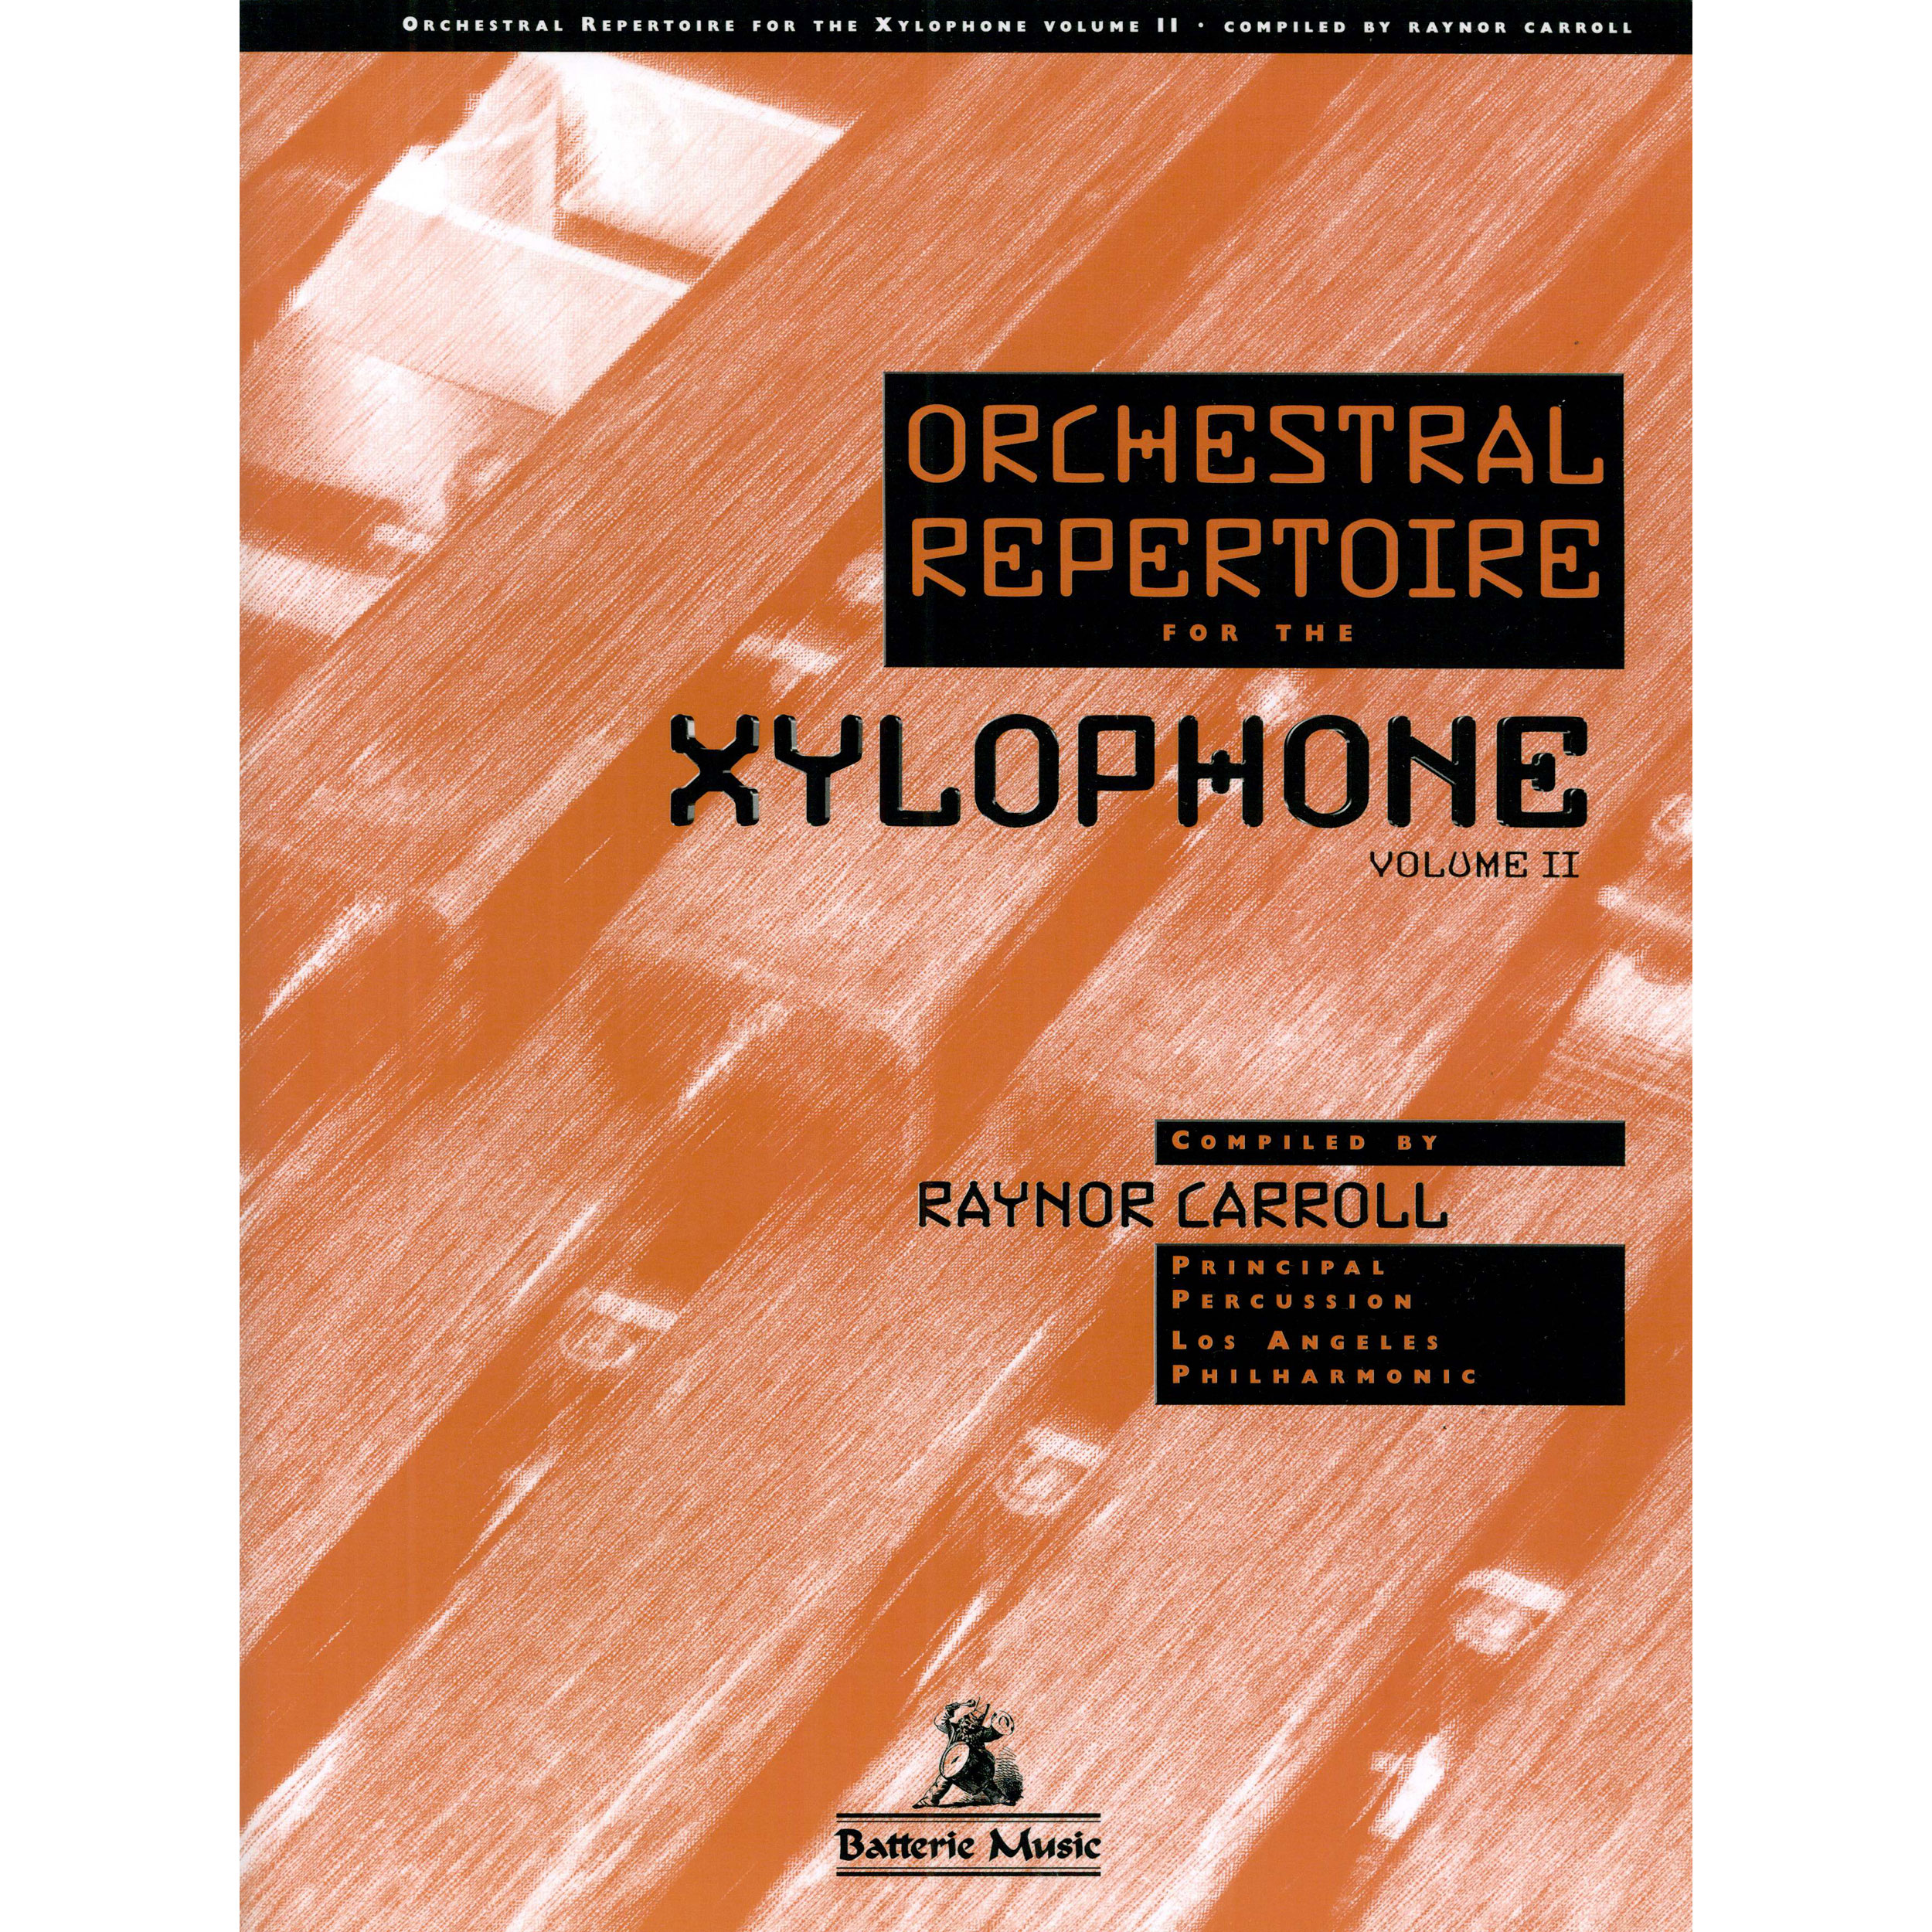 Orchestral Repertoire for the Xylophone - Vol. 2 by Raynor Carroll